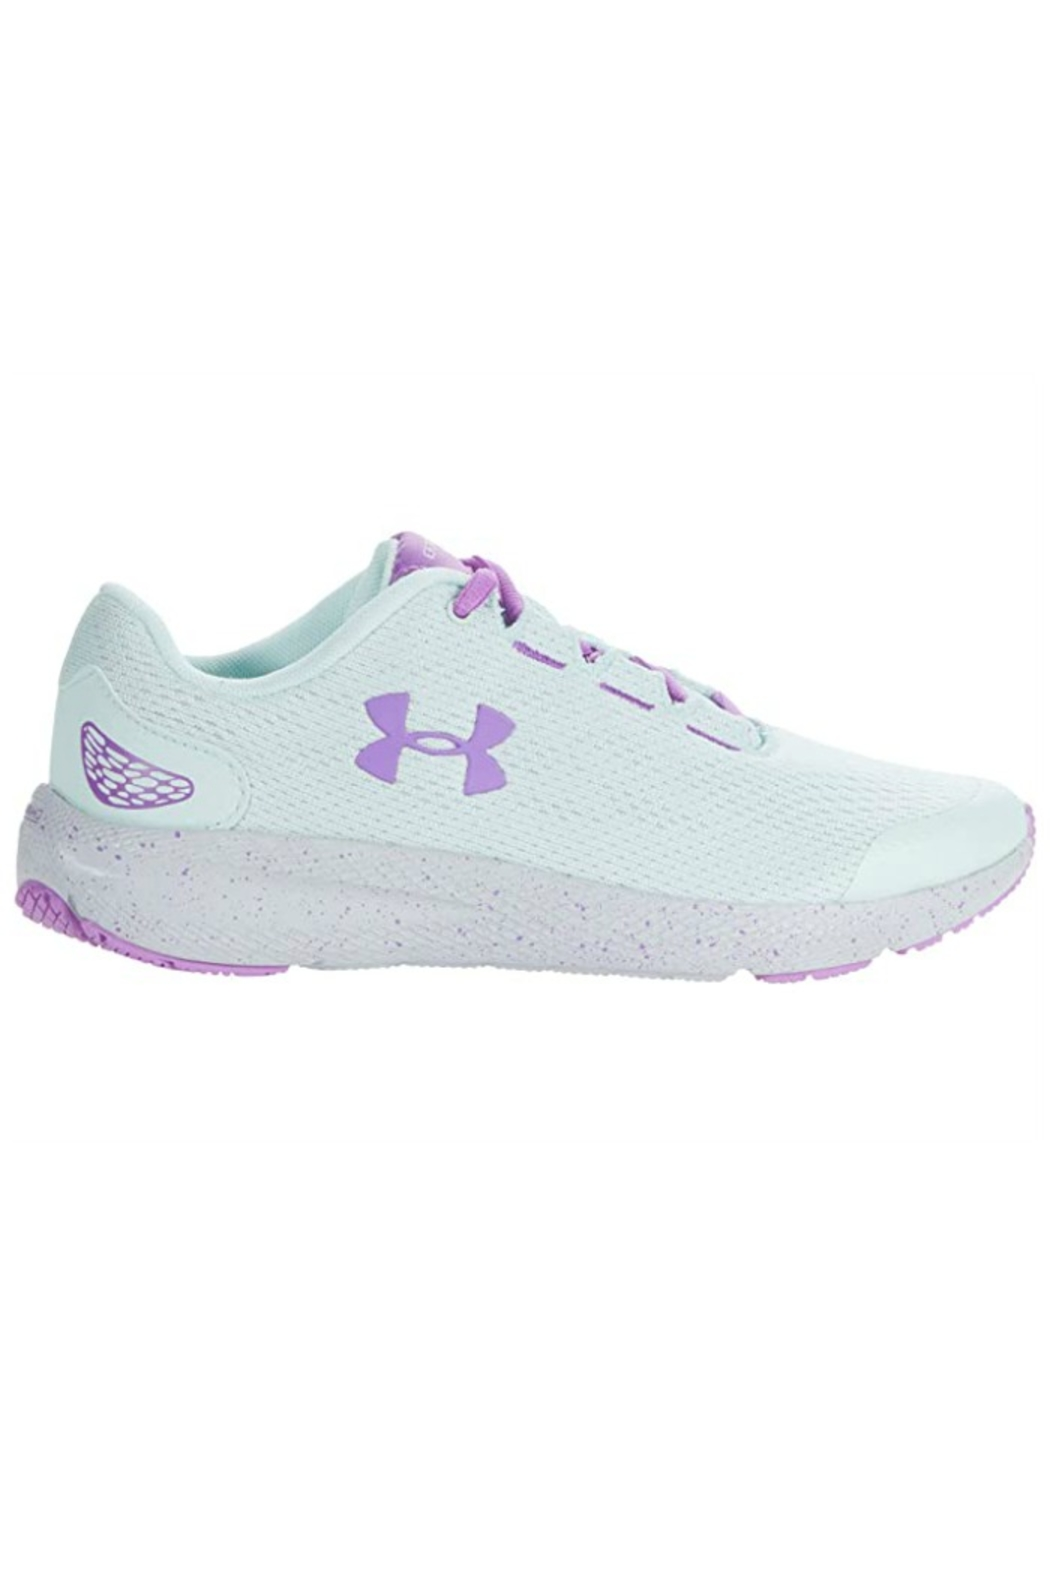 Under Armour Charged Pursuit 2 - Main Image